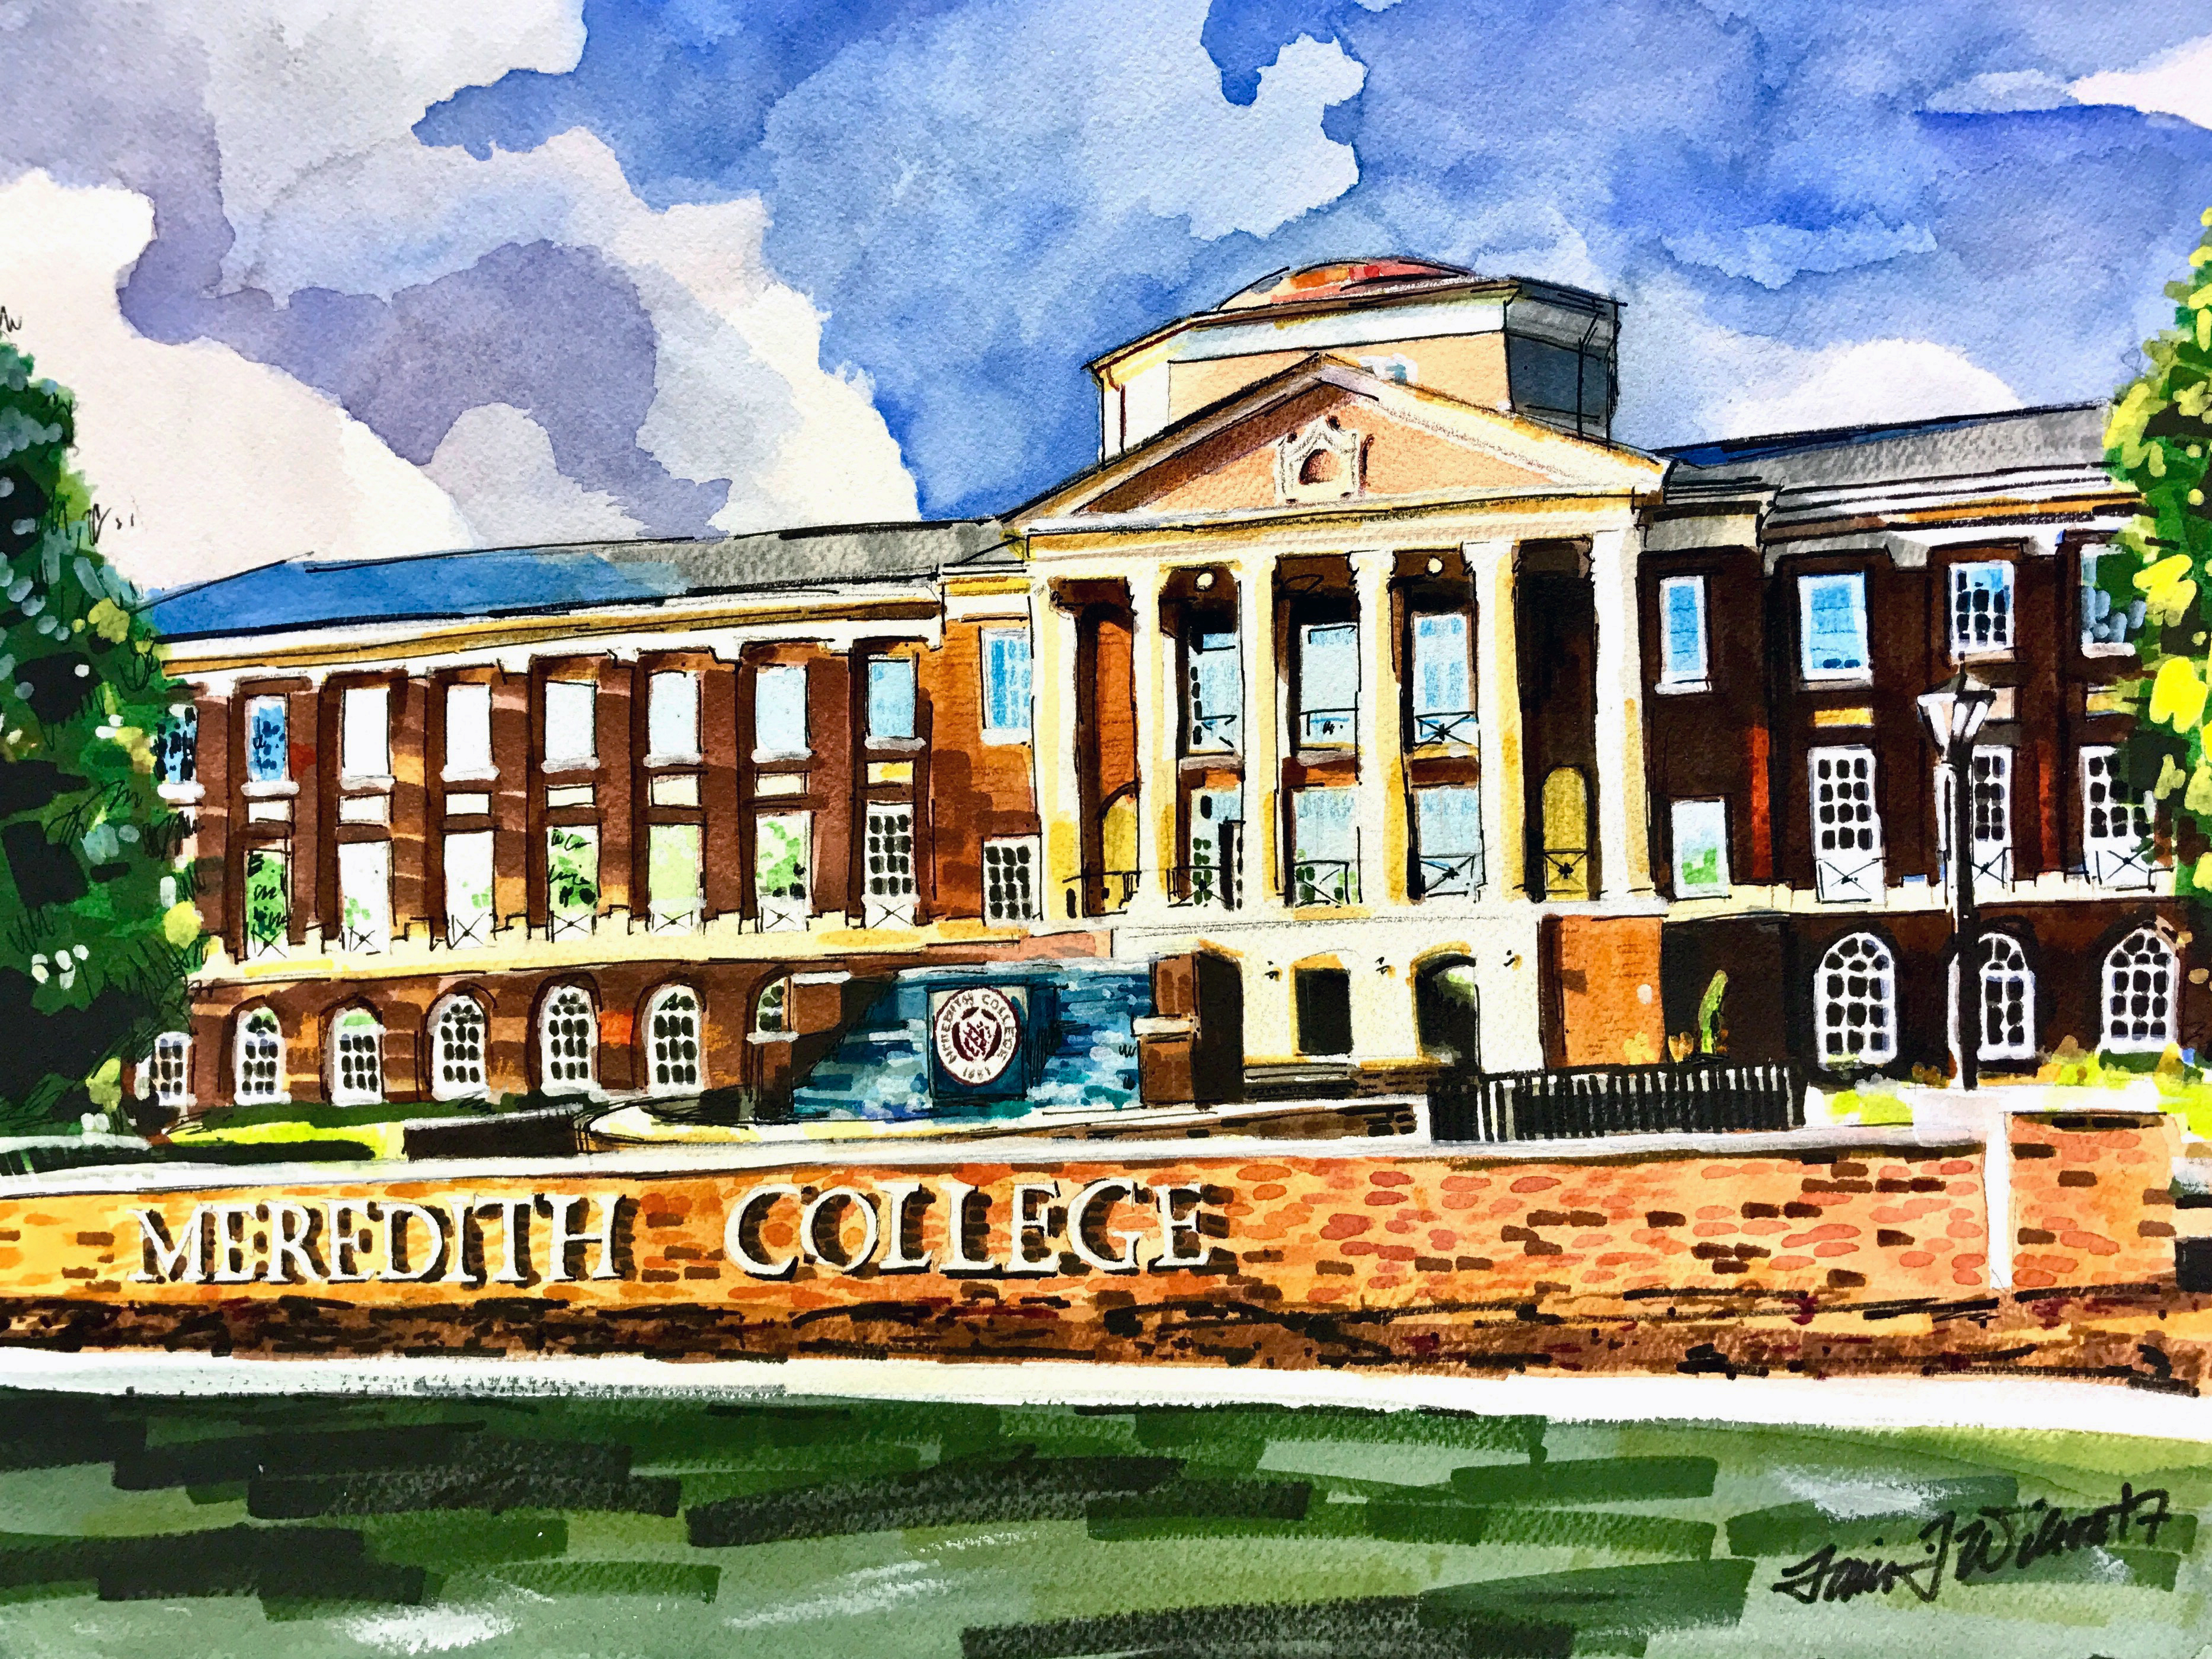 Meredith College - Raleigh, NC